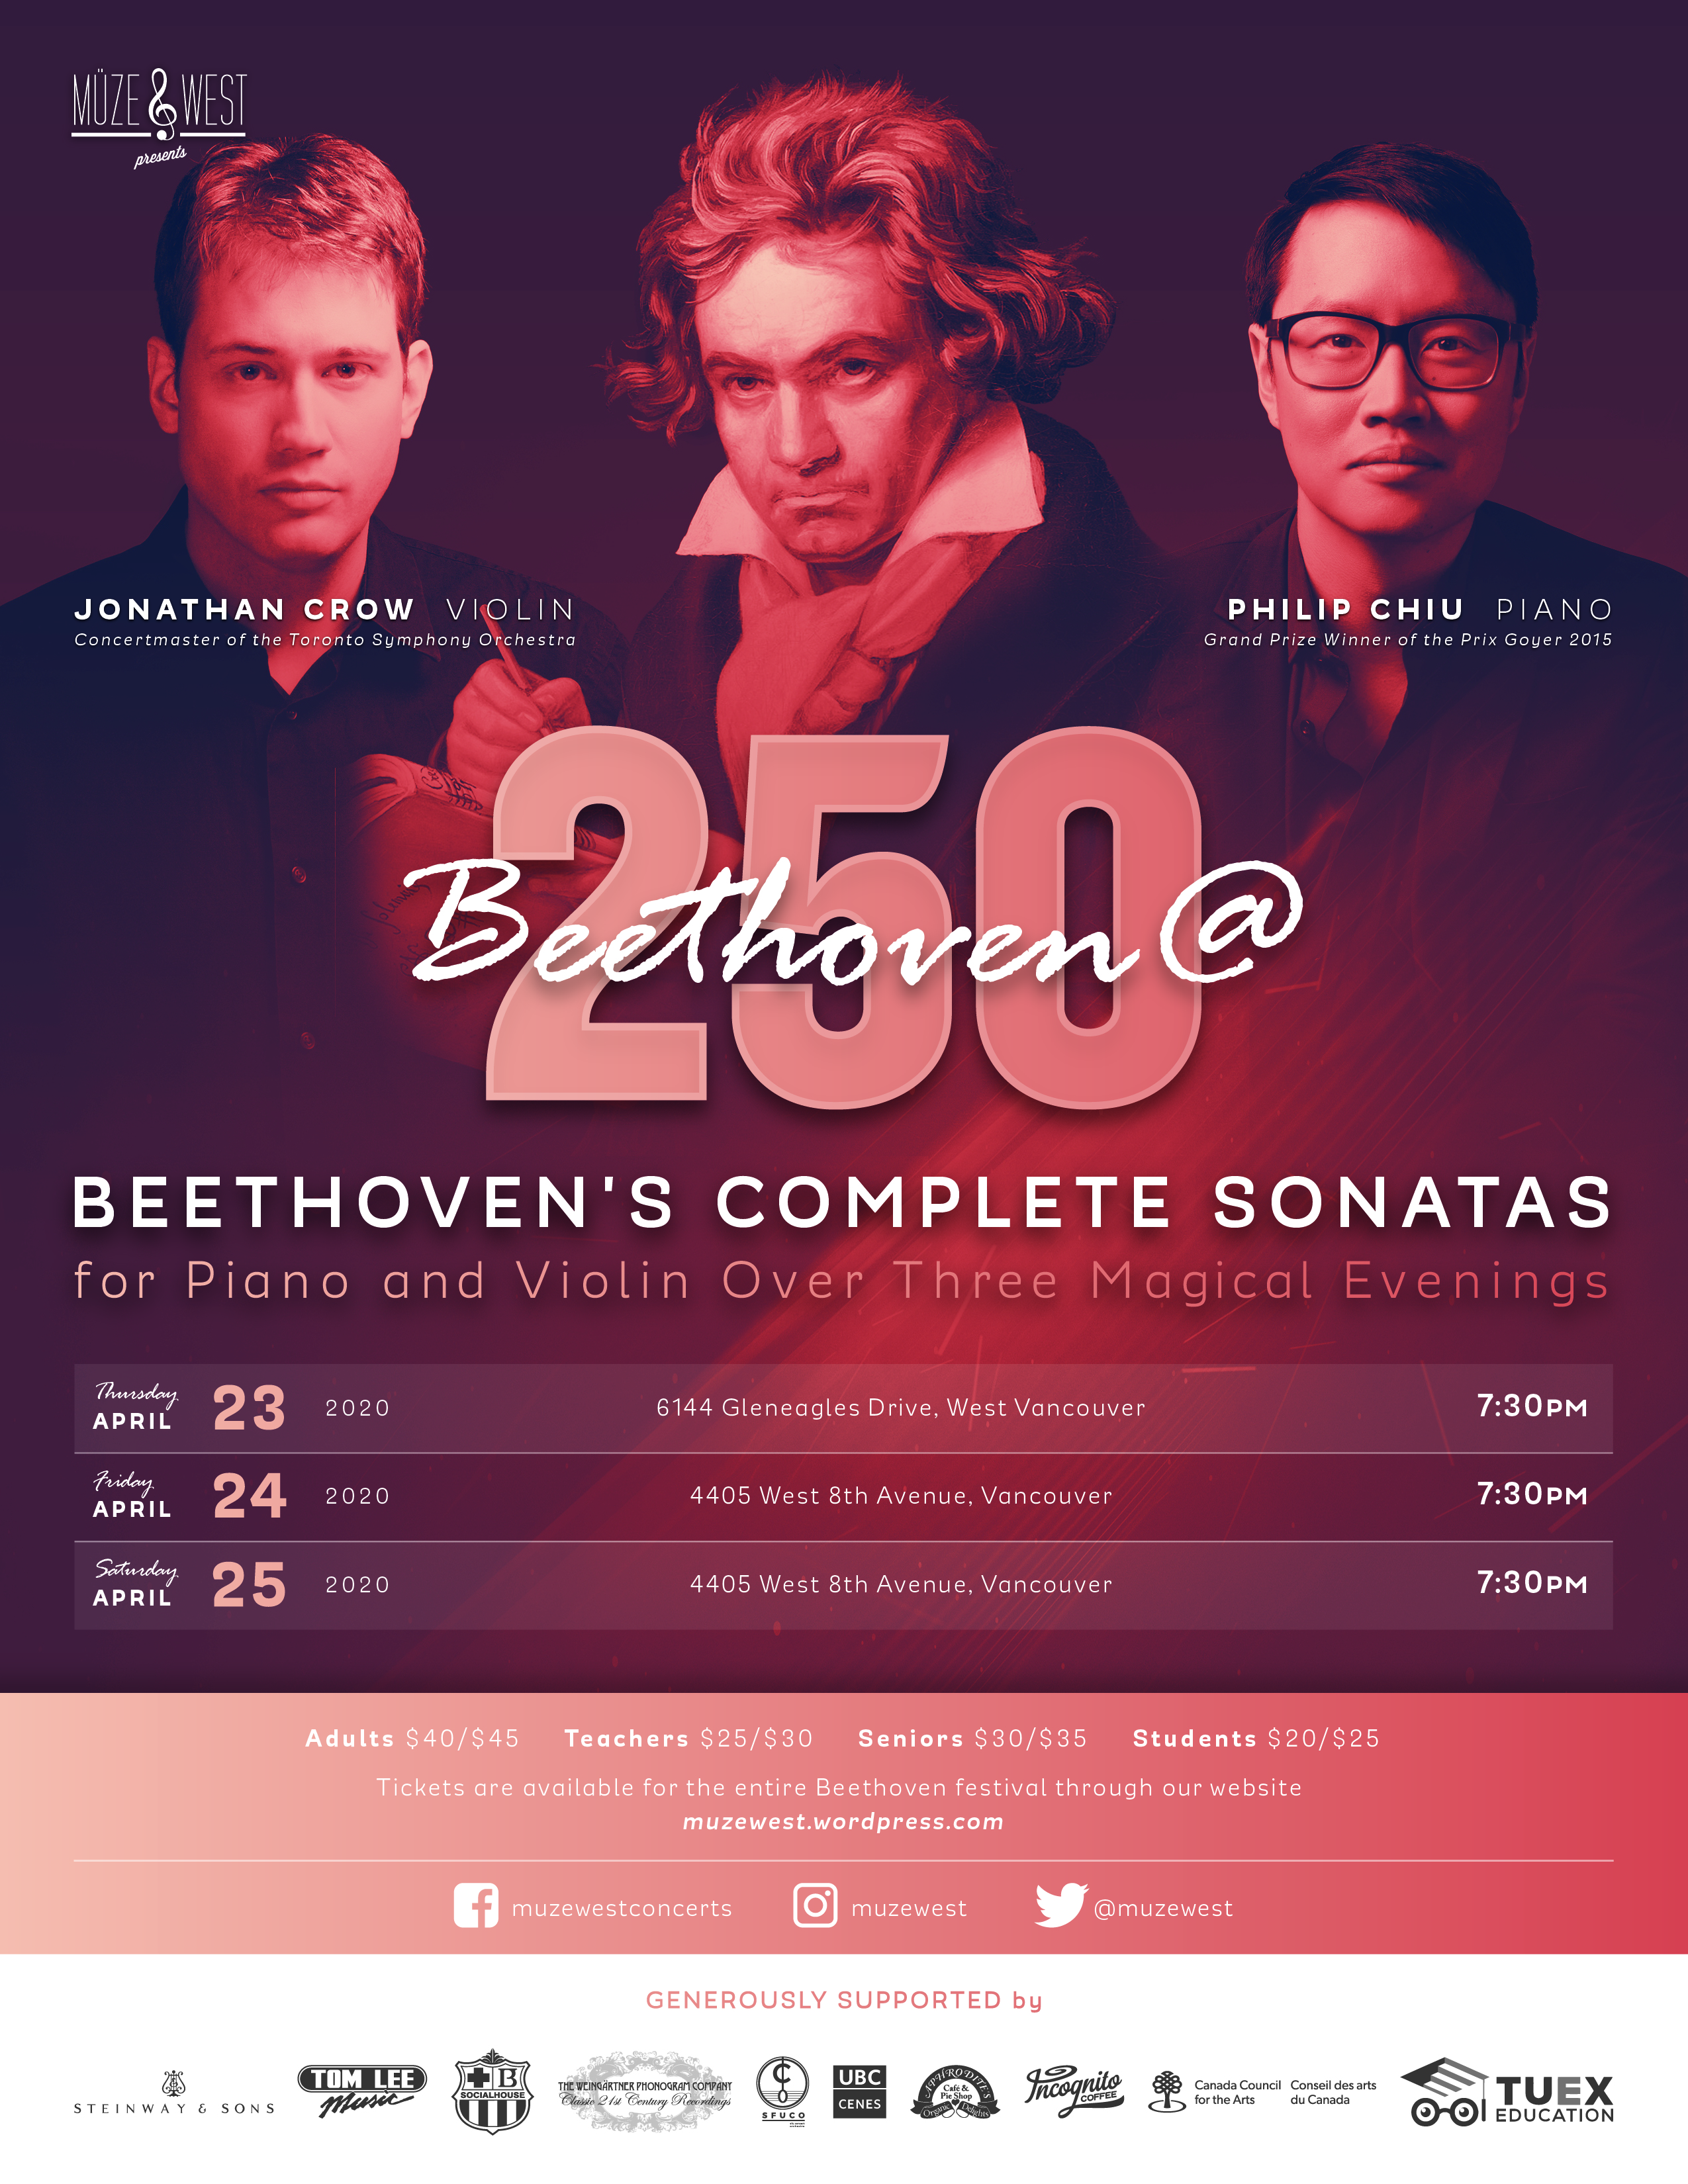 Beethoven @ 250 Festival – Night 3 (date to be determined)